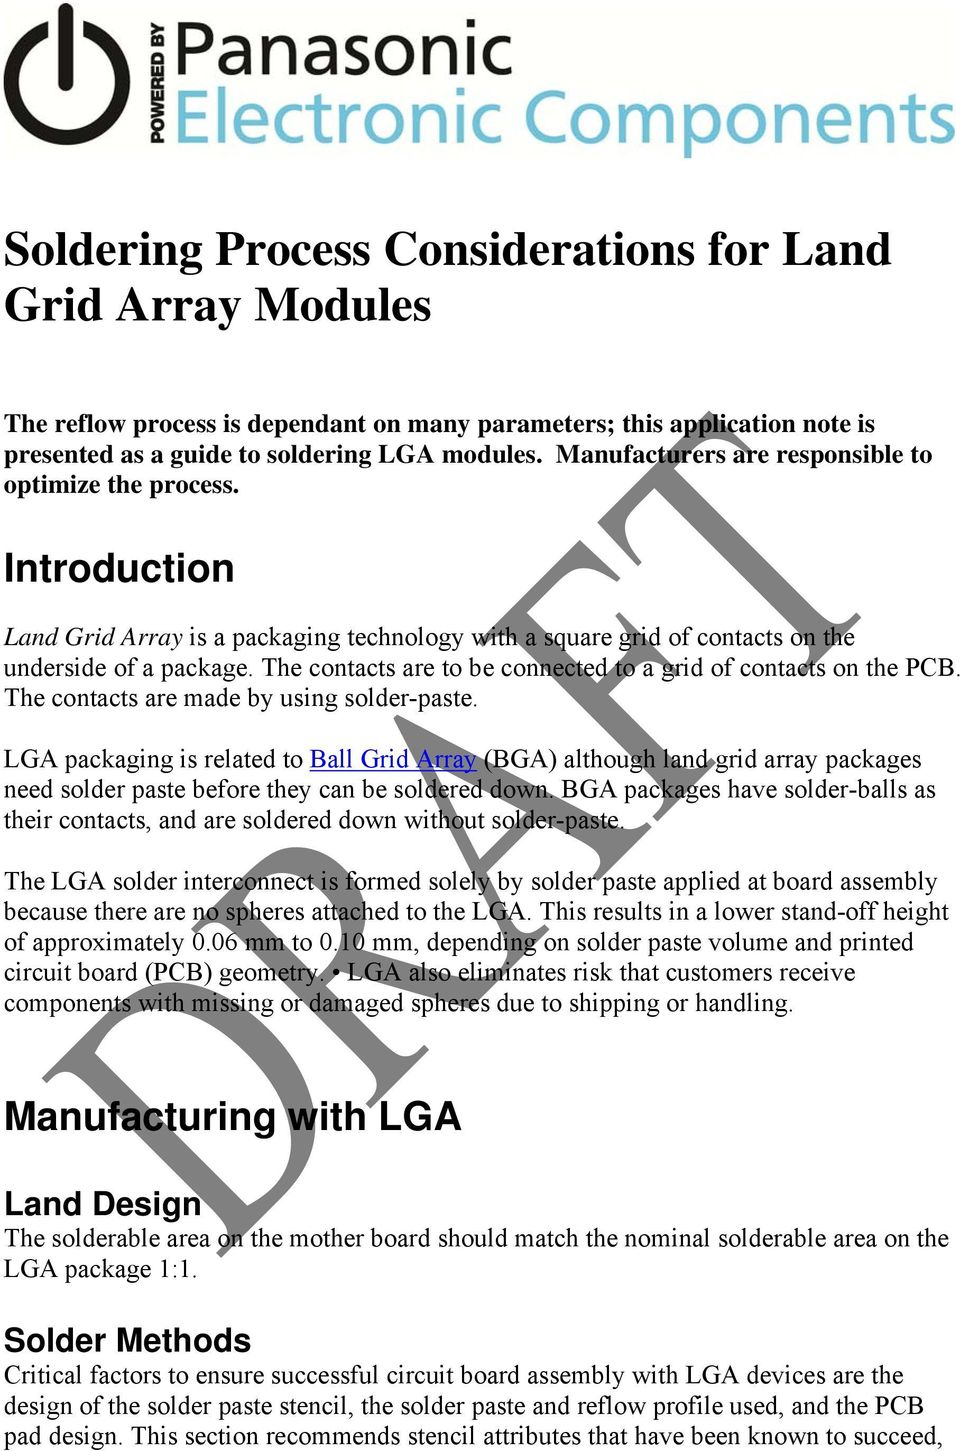 Soldering Process Considerations For Land Grid Array Modules Pdf Leadfree During Printed Circuit Board Manufacturing The Contacts Are To Be Connected A Of On Pcb